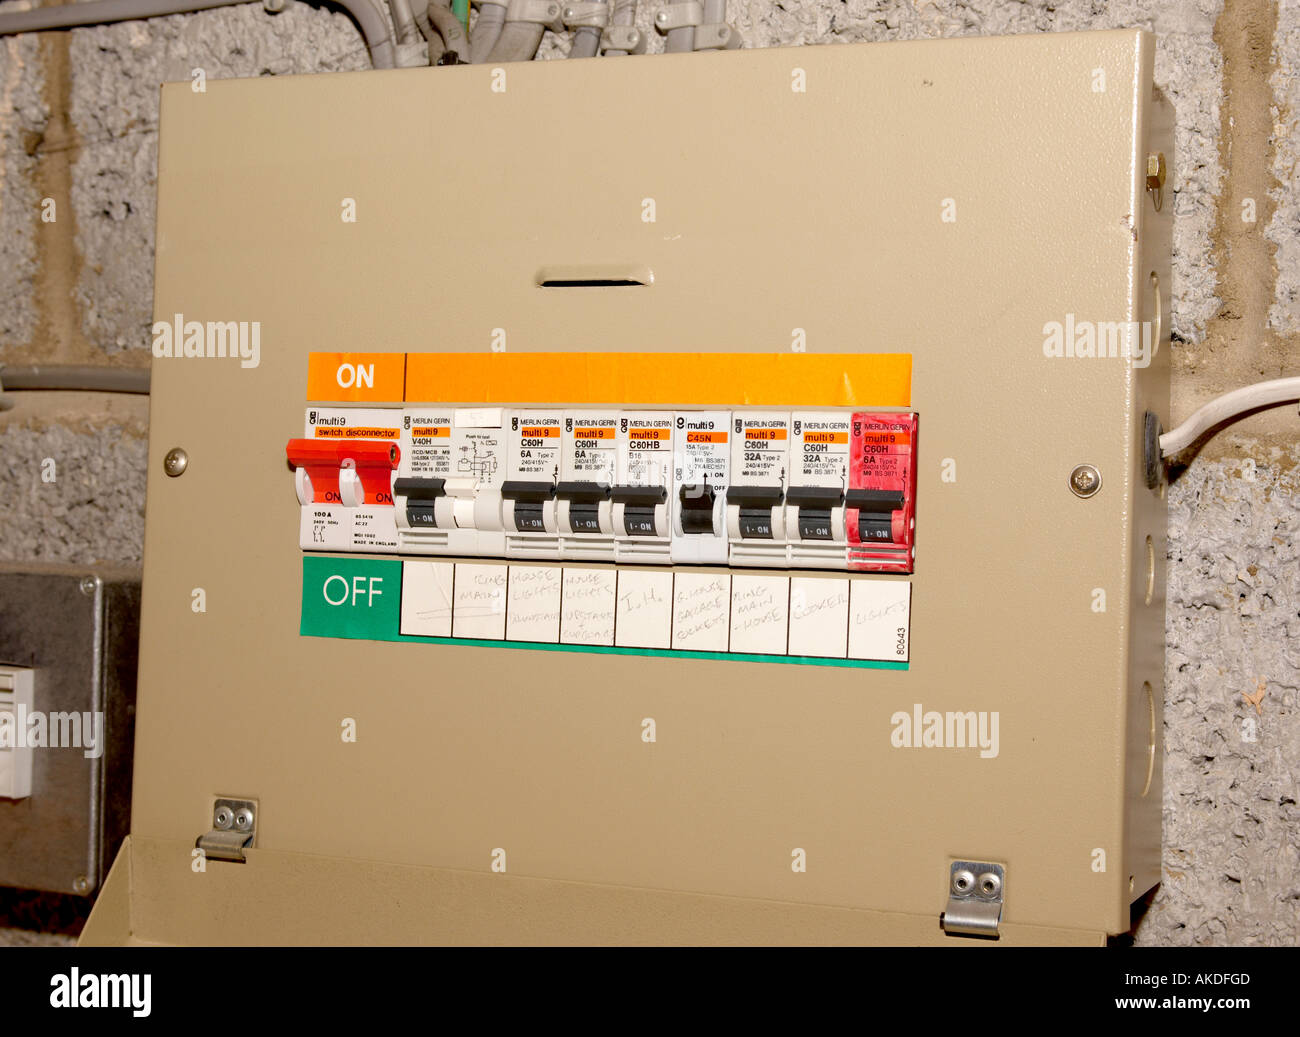 Domestic Fuse Box/Circuit Breaker - Stock Image